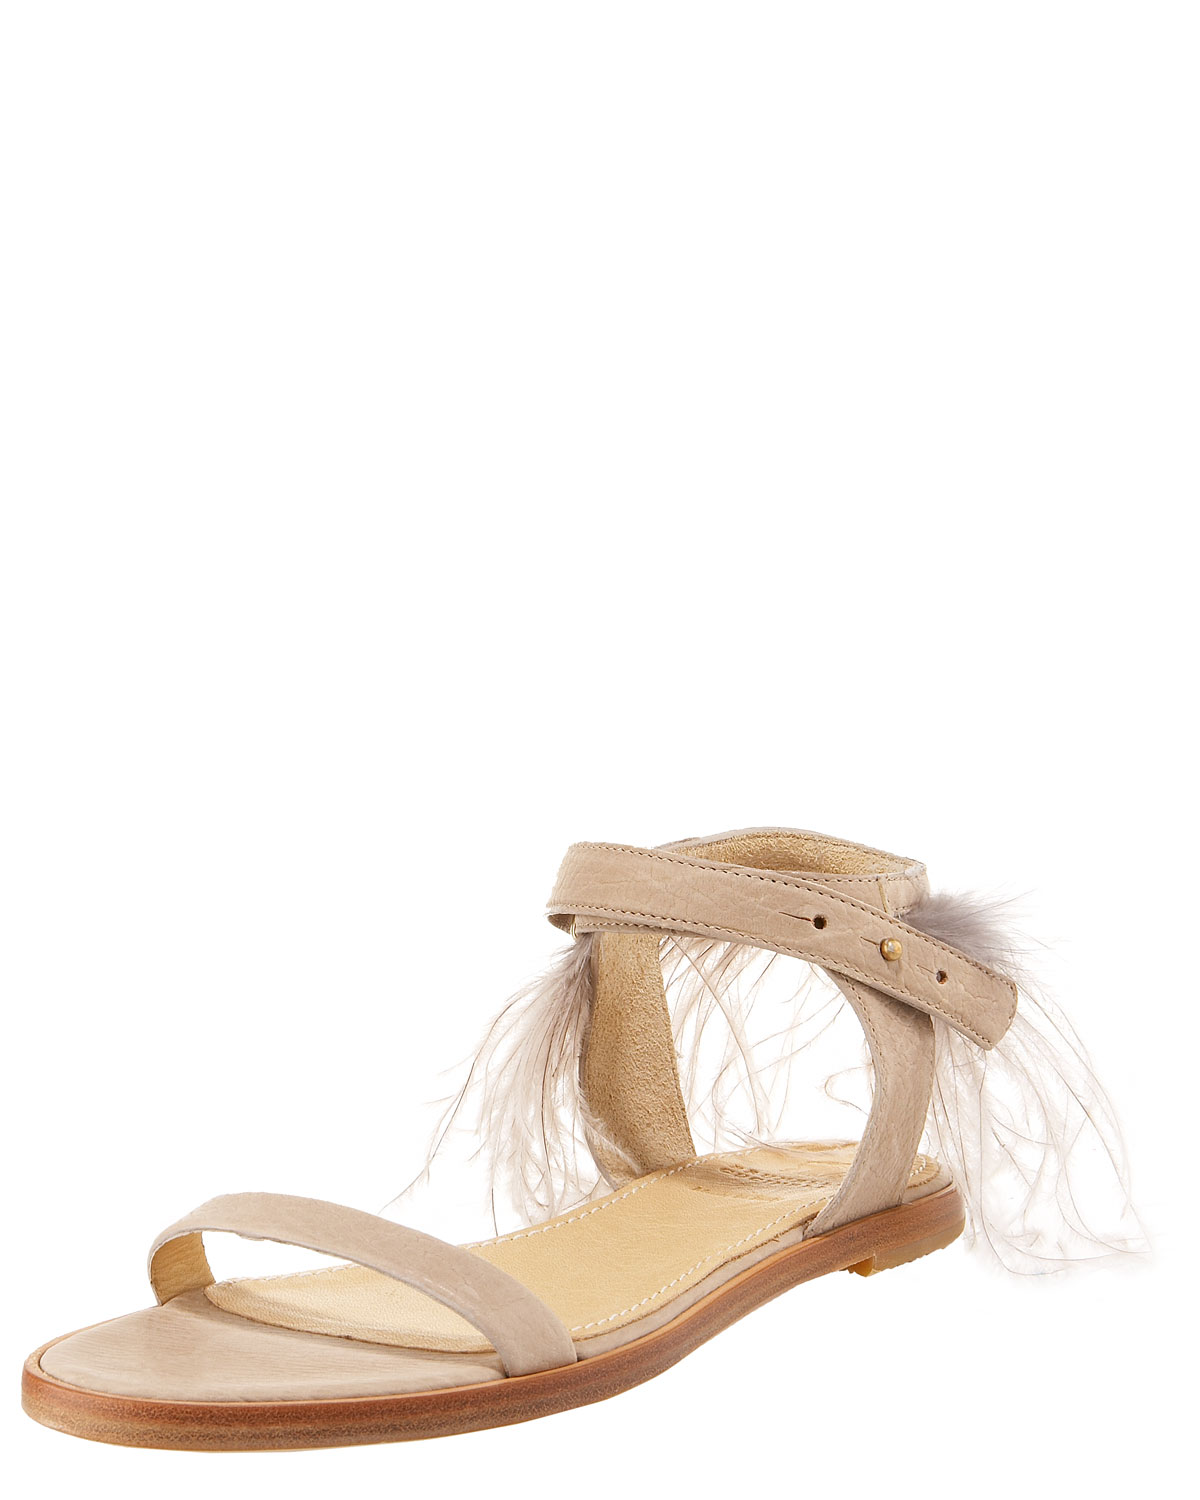 Brunello Cucinelli Ostrich Feather-Trimmed Leather Sandals free shipping the cheapest cheap online store low shipping for sale order sale online factory outlet for sale XVTtV